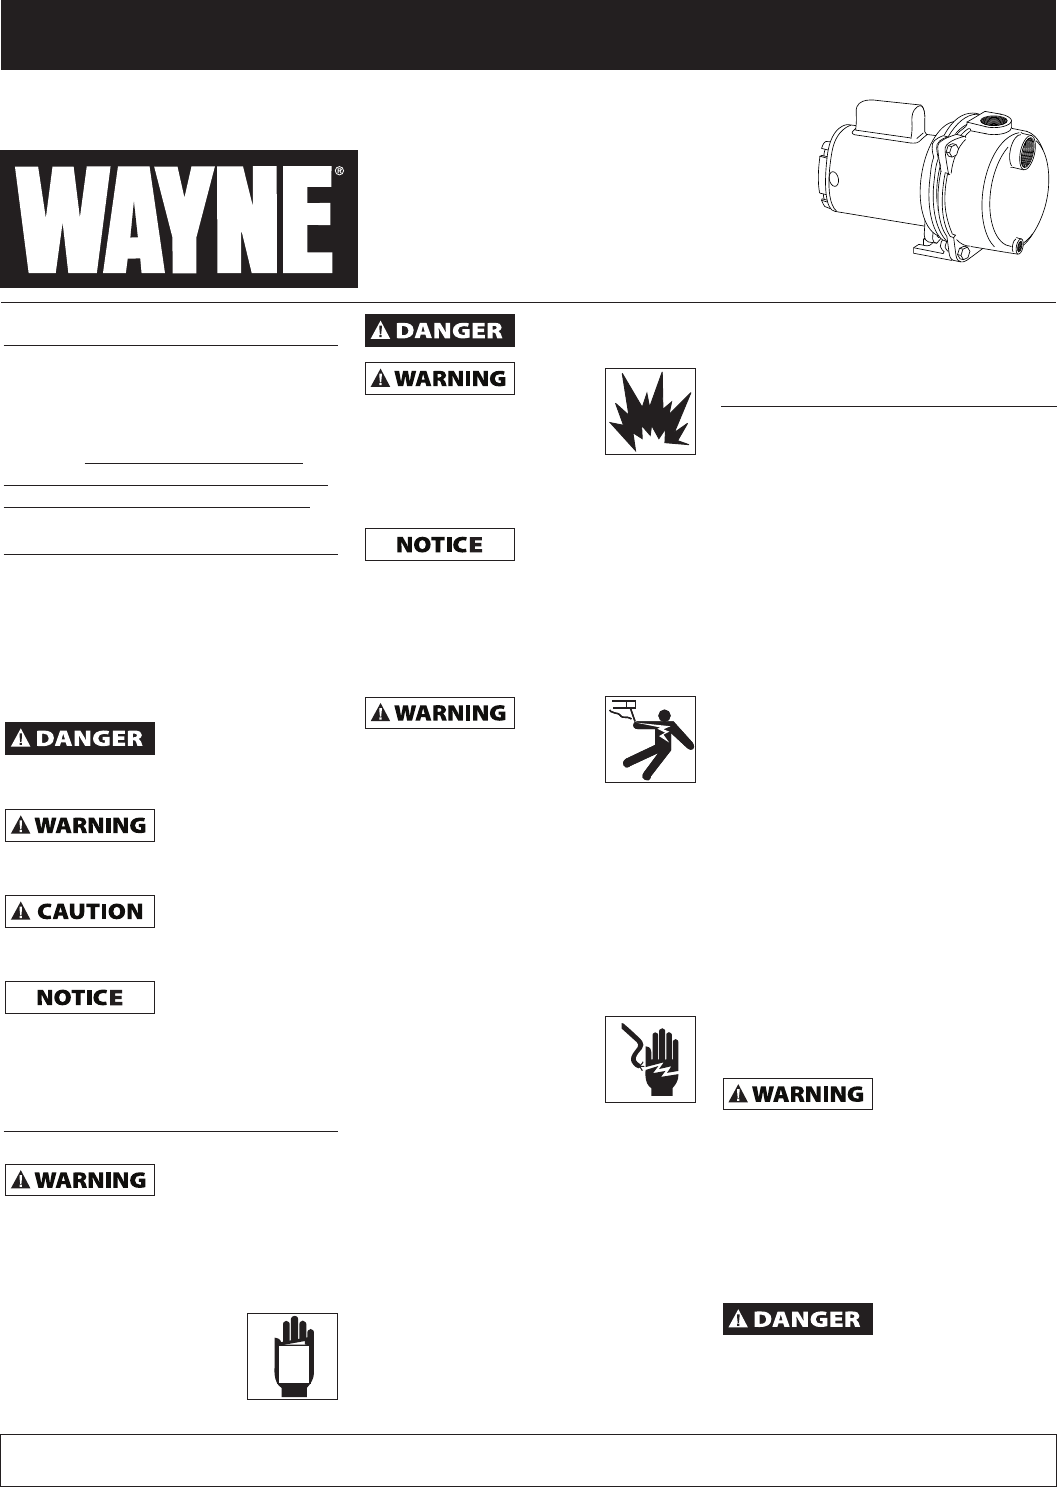 Wayne Sprinkler Wls200 User Guide